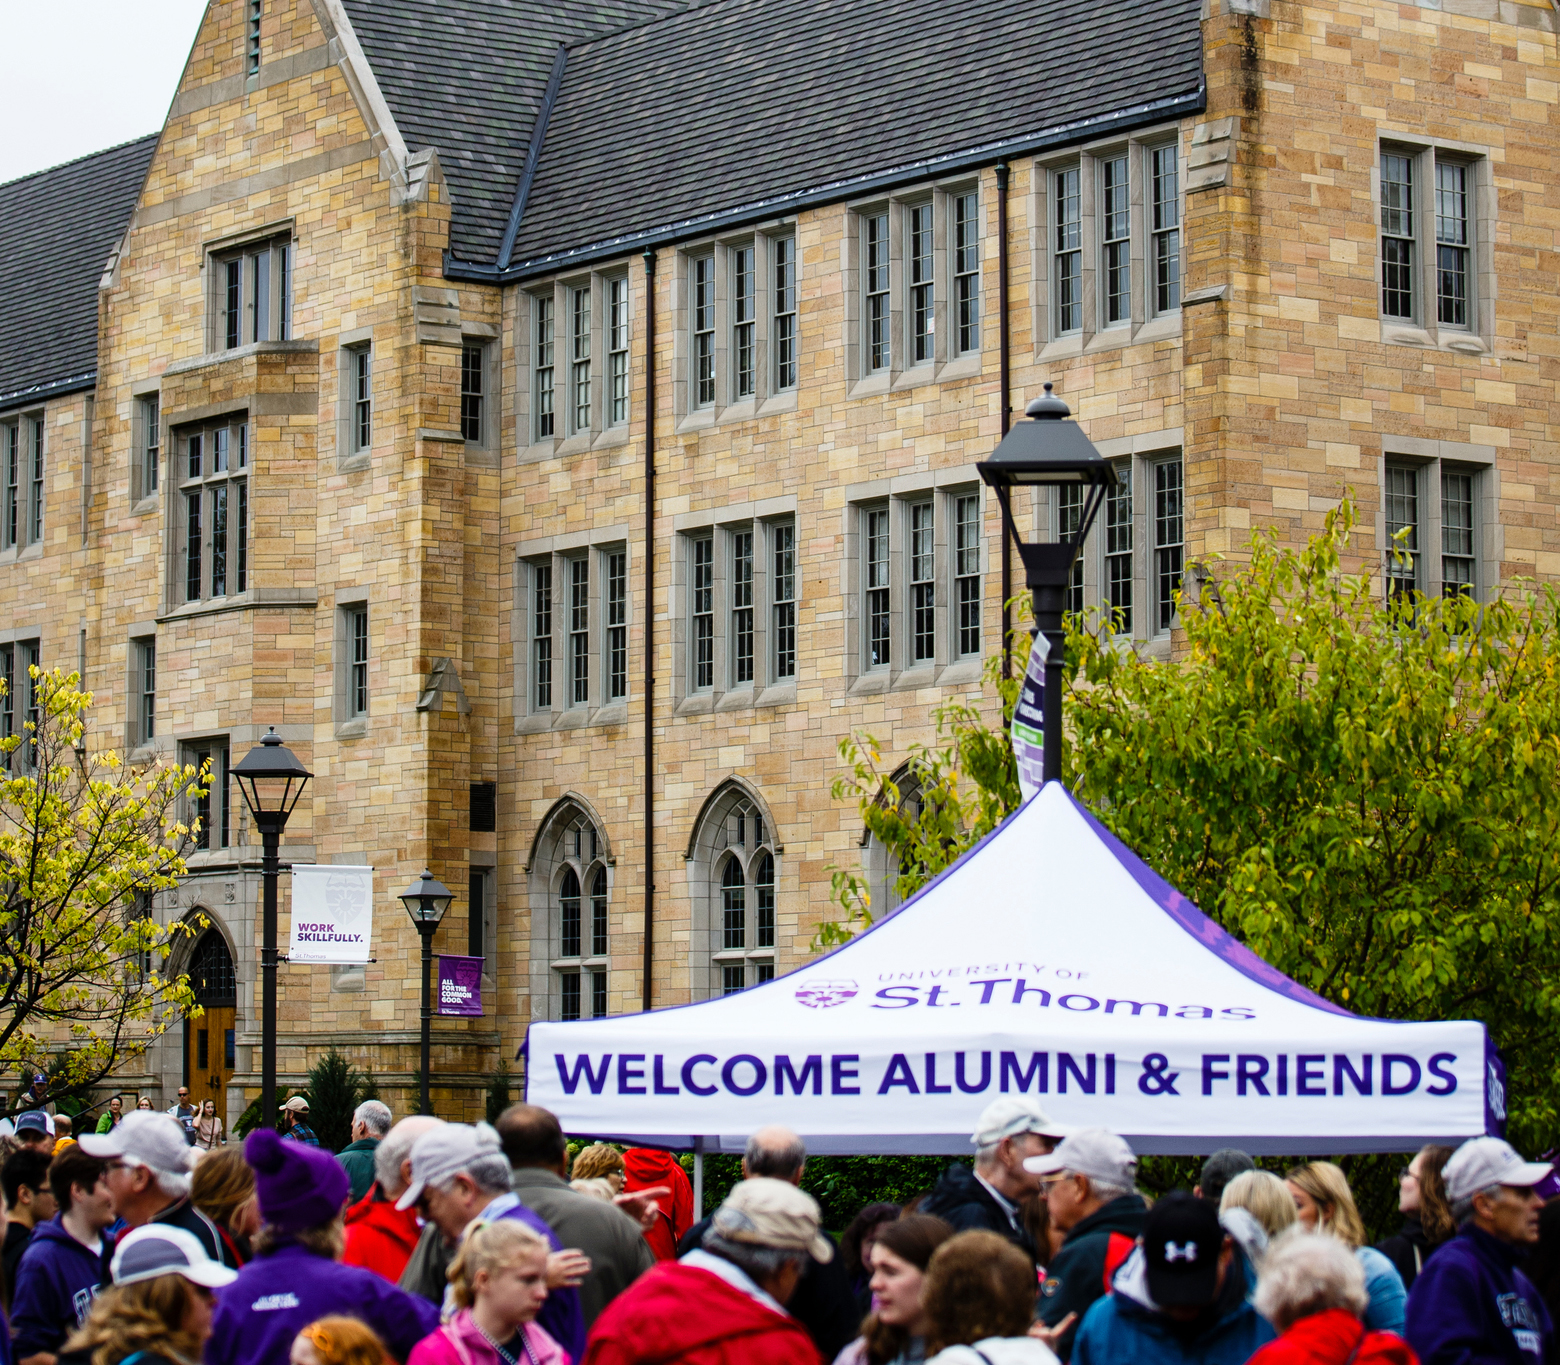 alumni tent in homecoming crowd